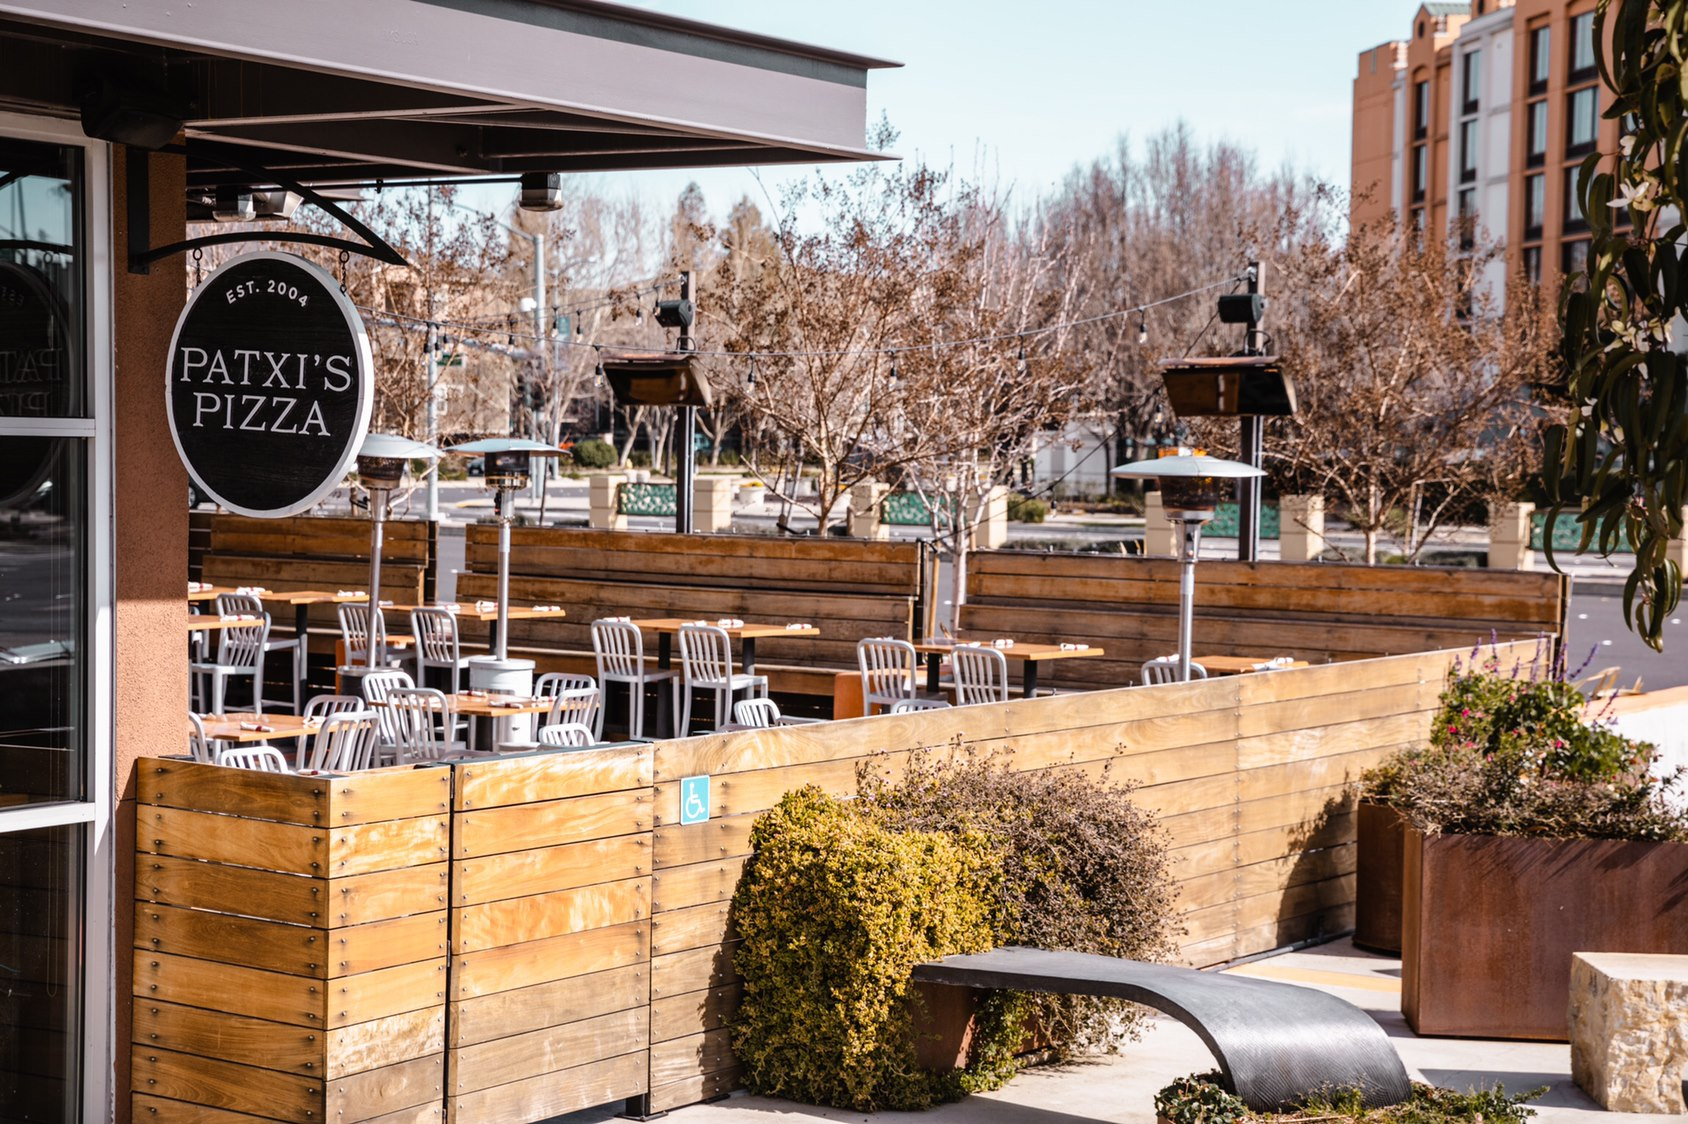 this is a photo of the attractive outdoor dining area at Patxi's Pizza